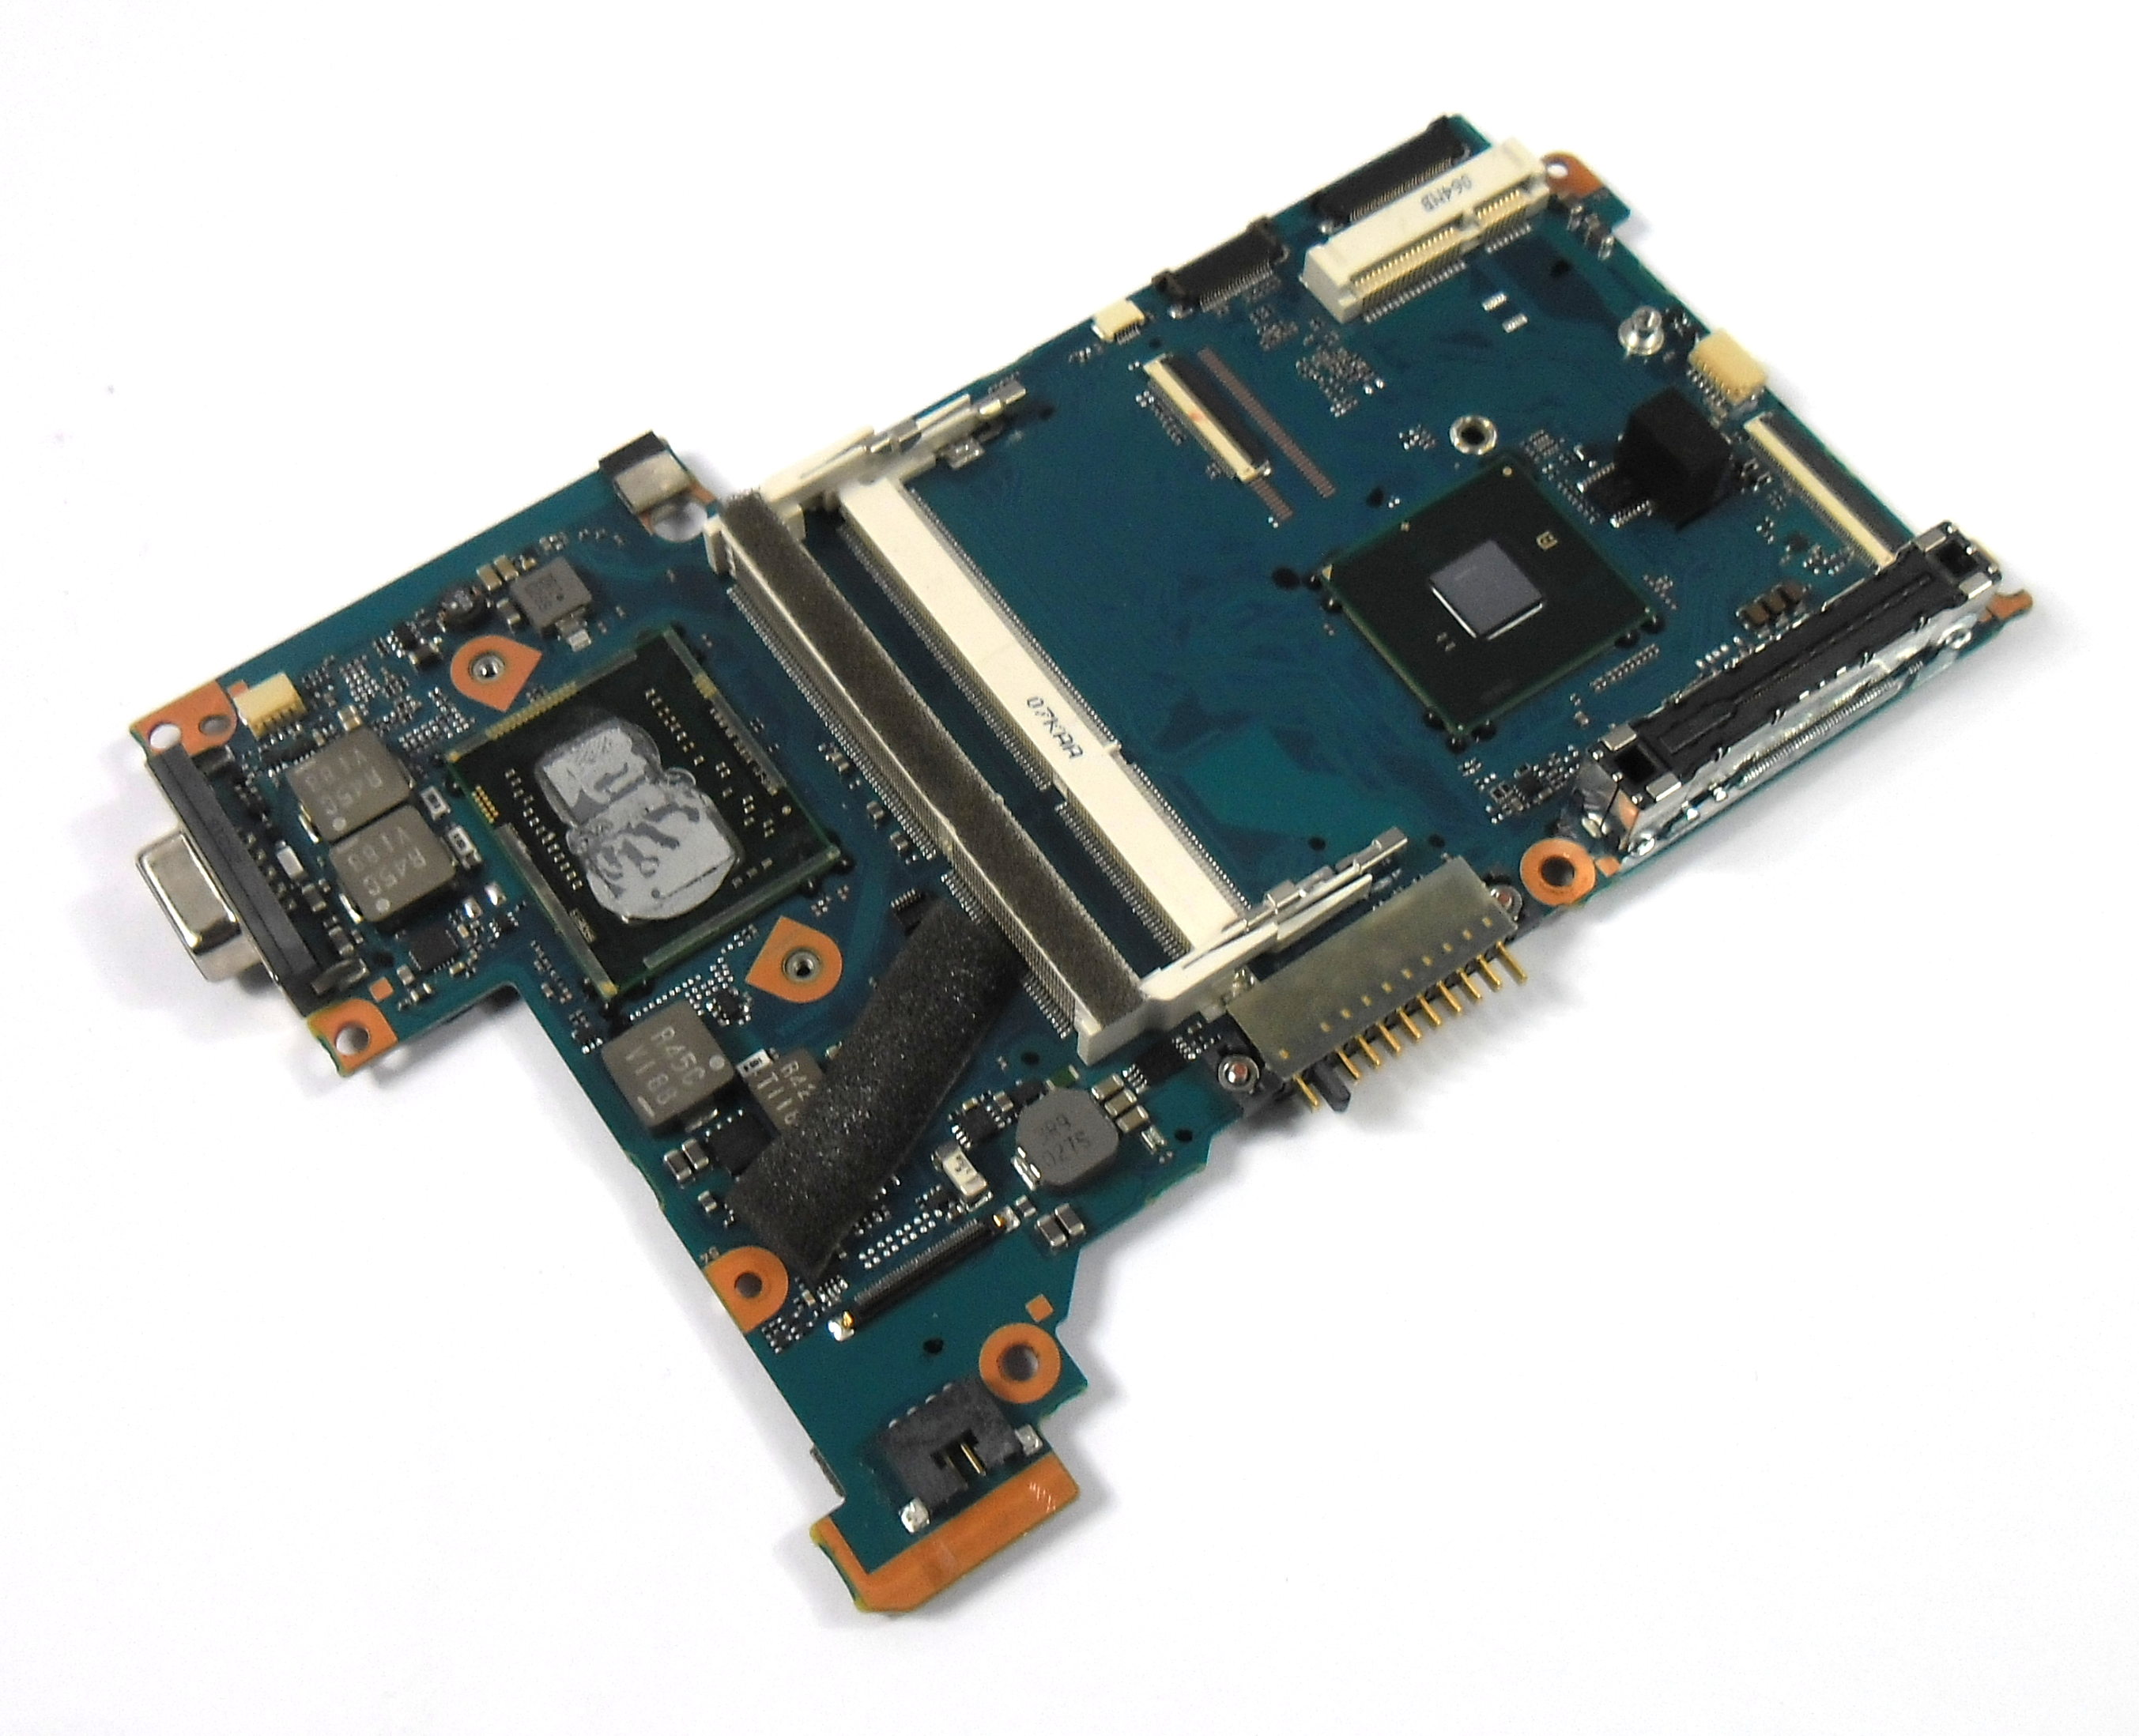 Toshiba FULSY4 Portege R700 Laptop Motherboard with Intel i3-380M CPU